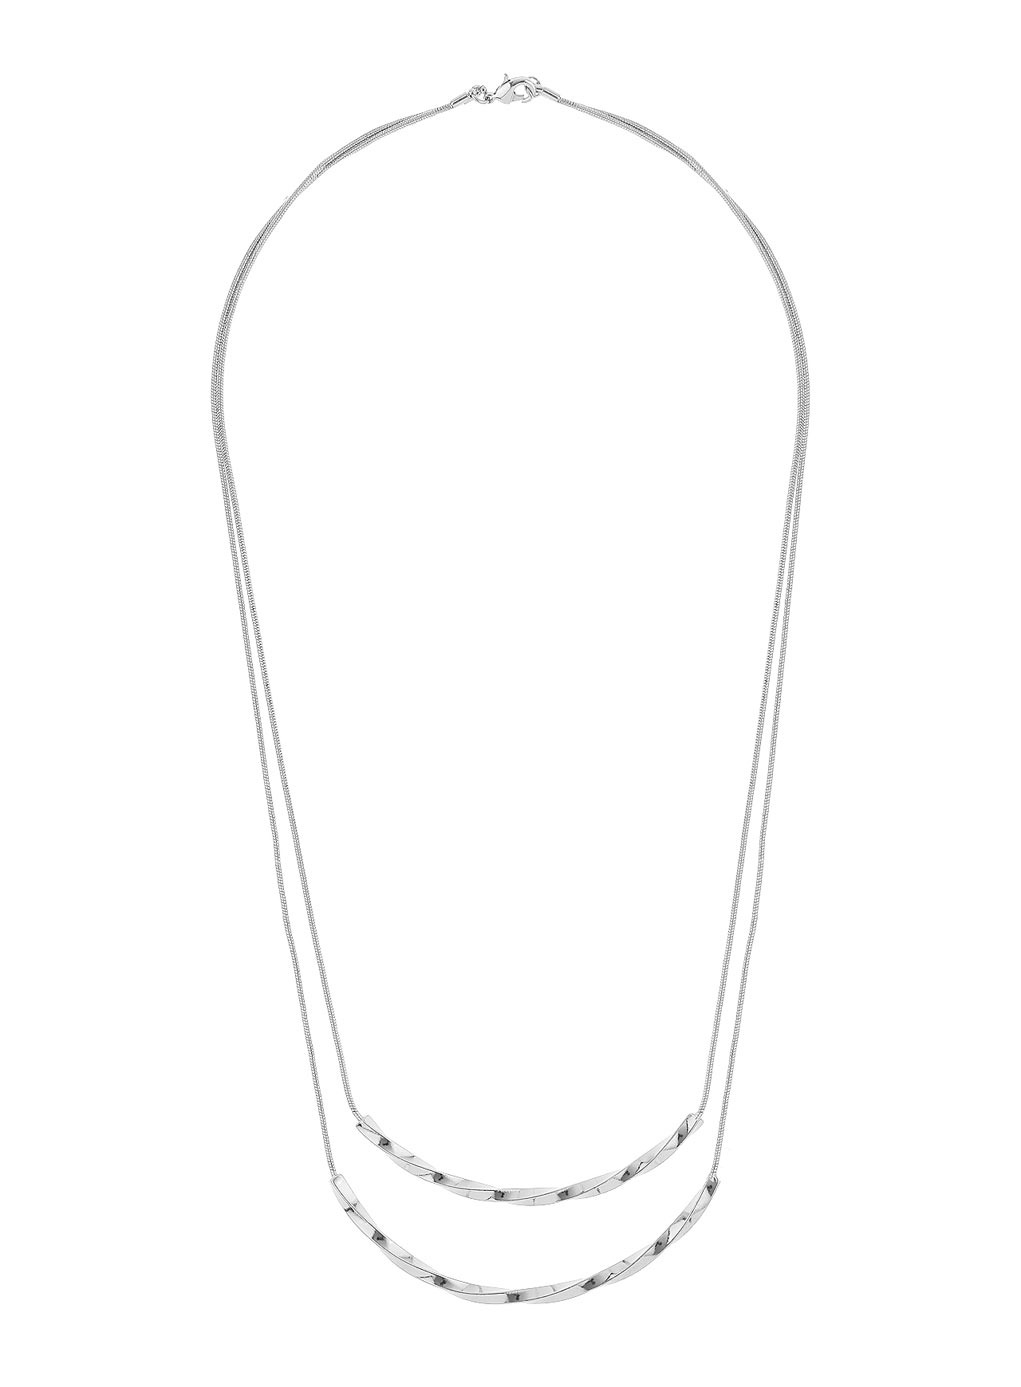 Silver Twisted Bar Necklace - predominant colour: silver; occasions: casual, evening; style: multistrand; length: mid; size: standard; material: chain/metal; finish: metallic; season: s/s 2014